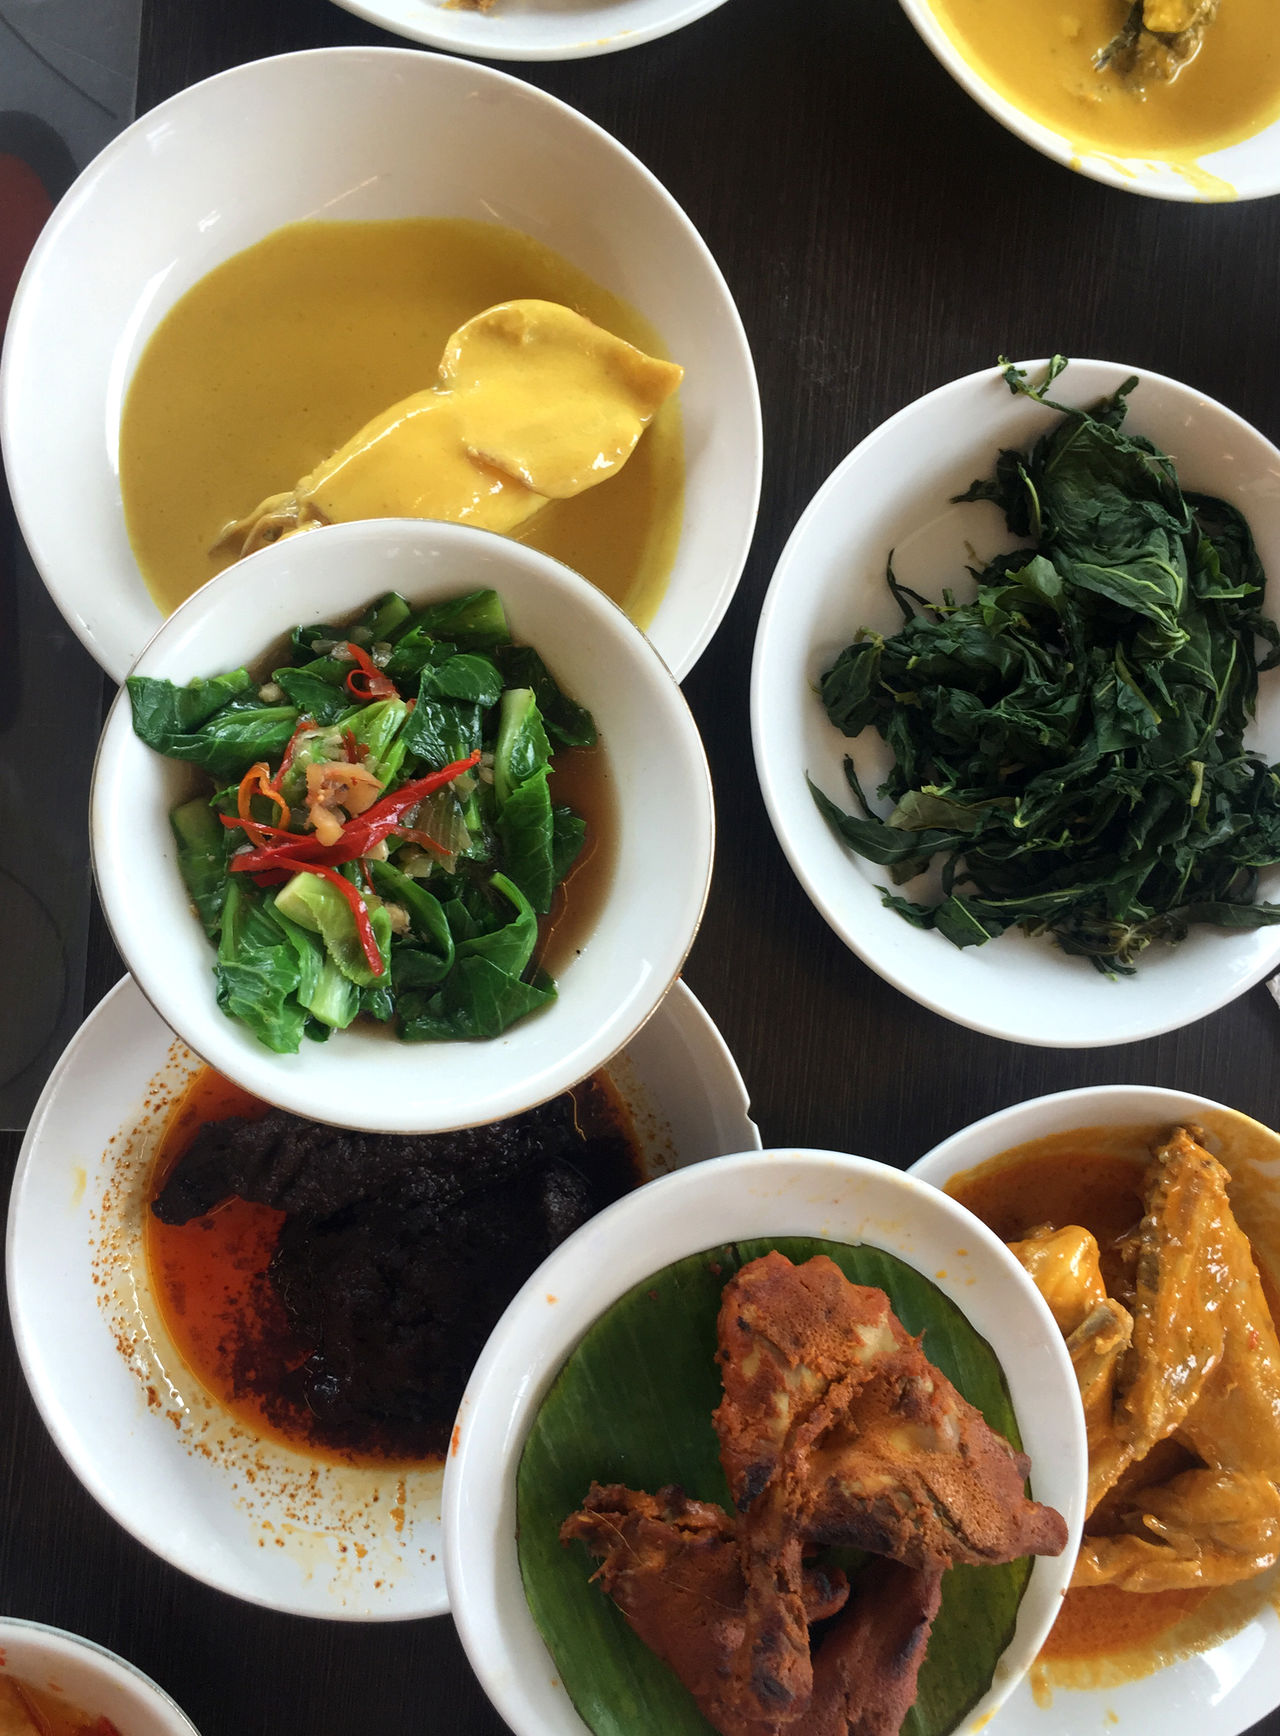 ndonesian cuisine, Padang food. Bowl Close-up Culinary Day Food Food And Drink Freshness Healthy Eating Indonesia Cuisine Indonesia Culinary Minang Minang Food No People Padang Padang Food Plate Ready-to-eat Rendang Serving Size Spicy Table Traditional Food Vegetables Verical